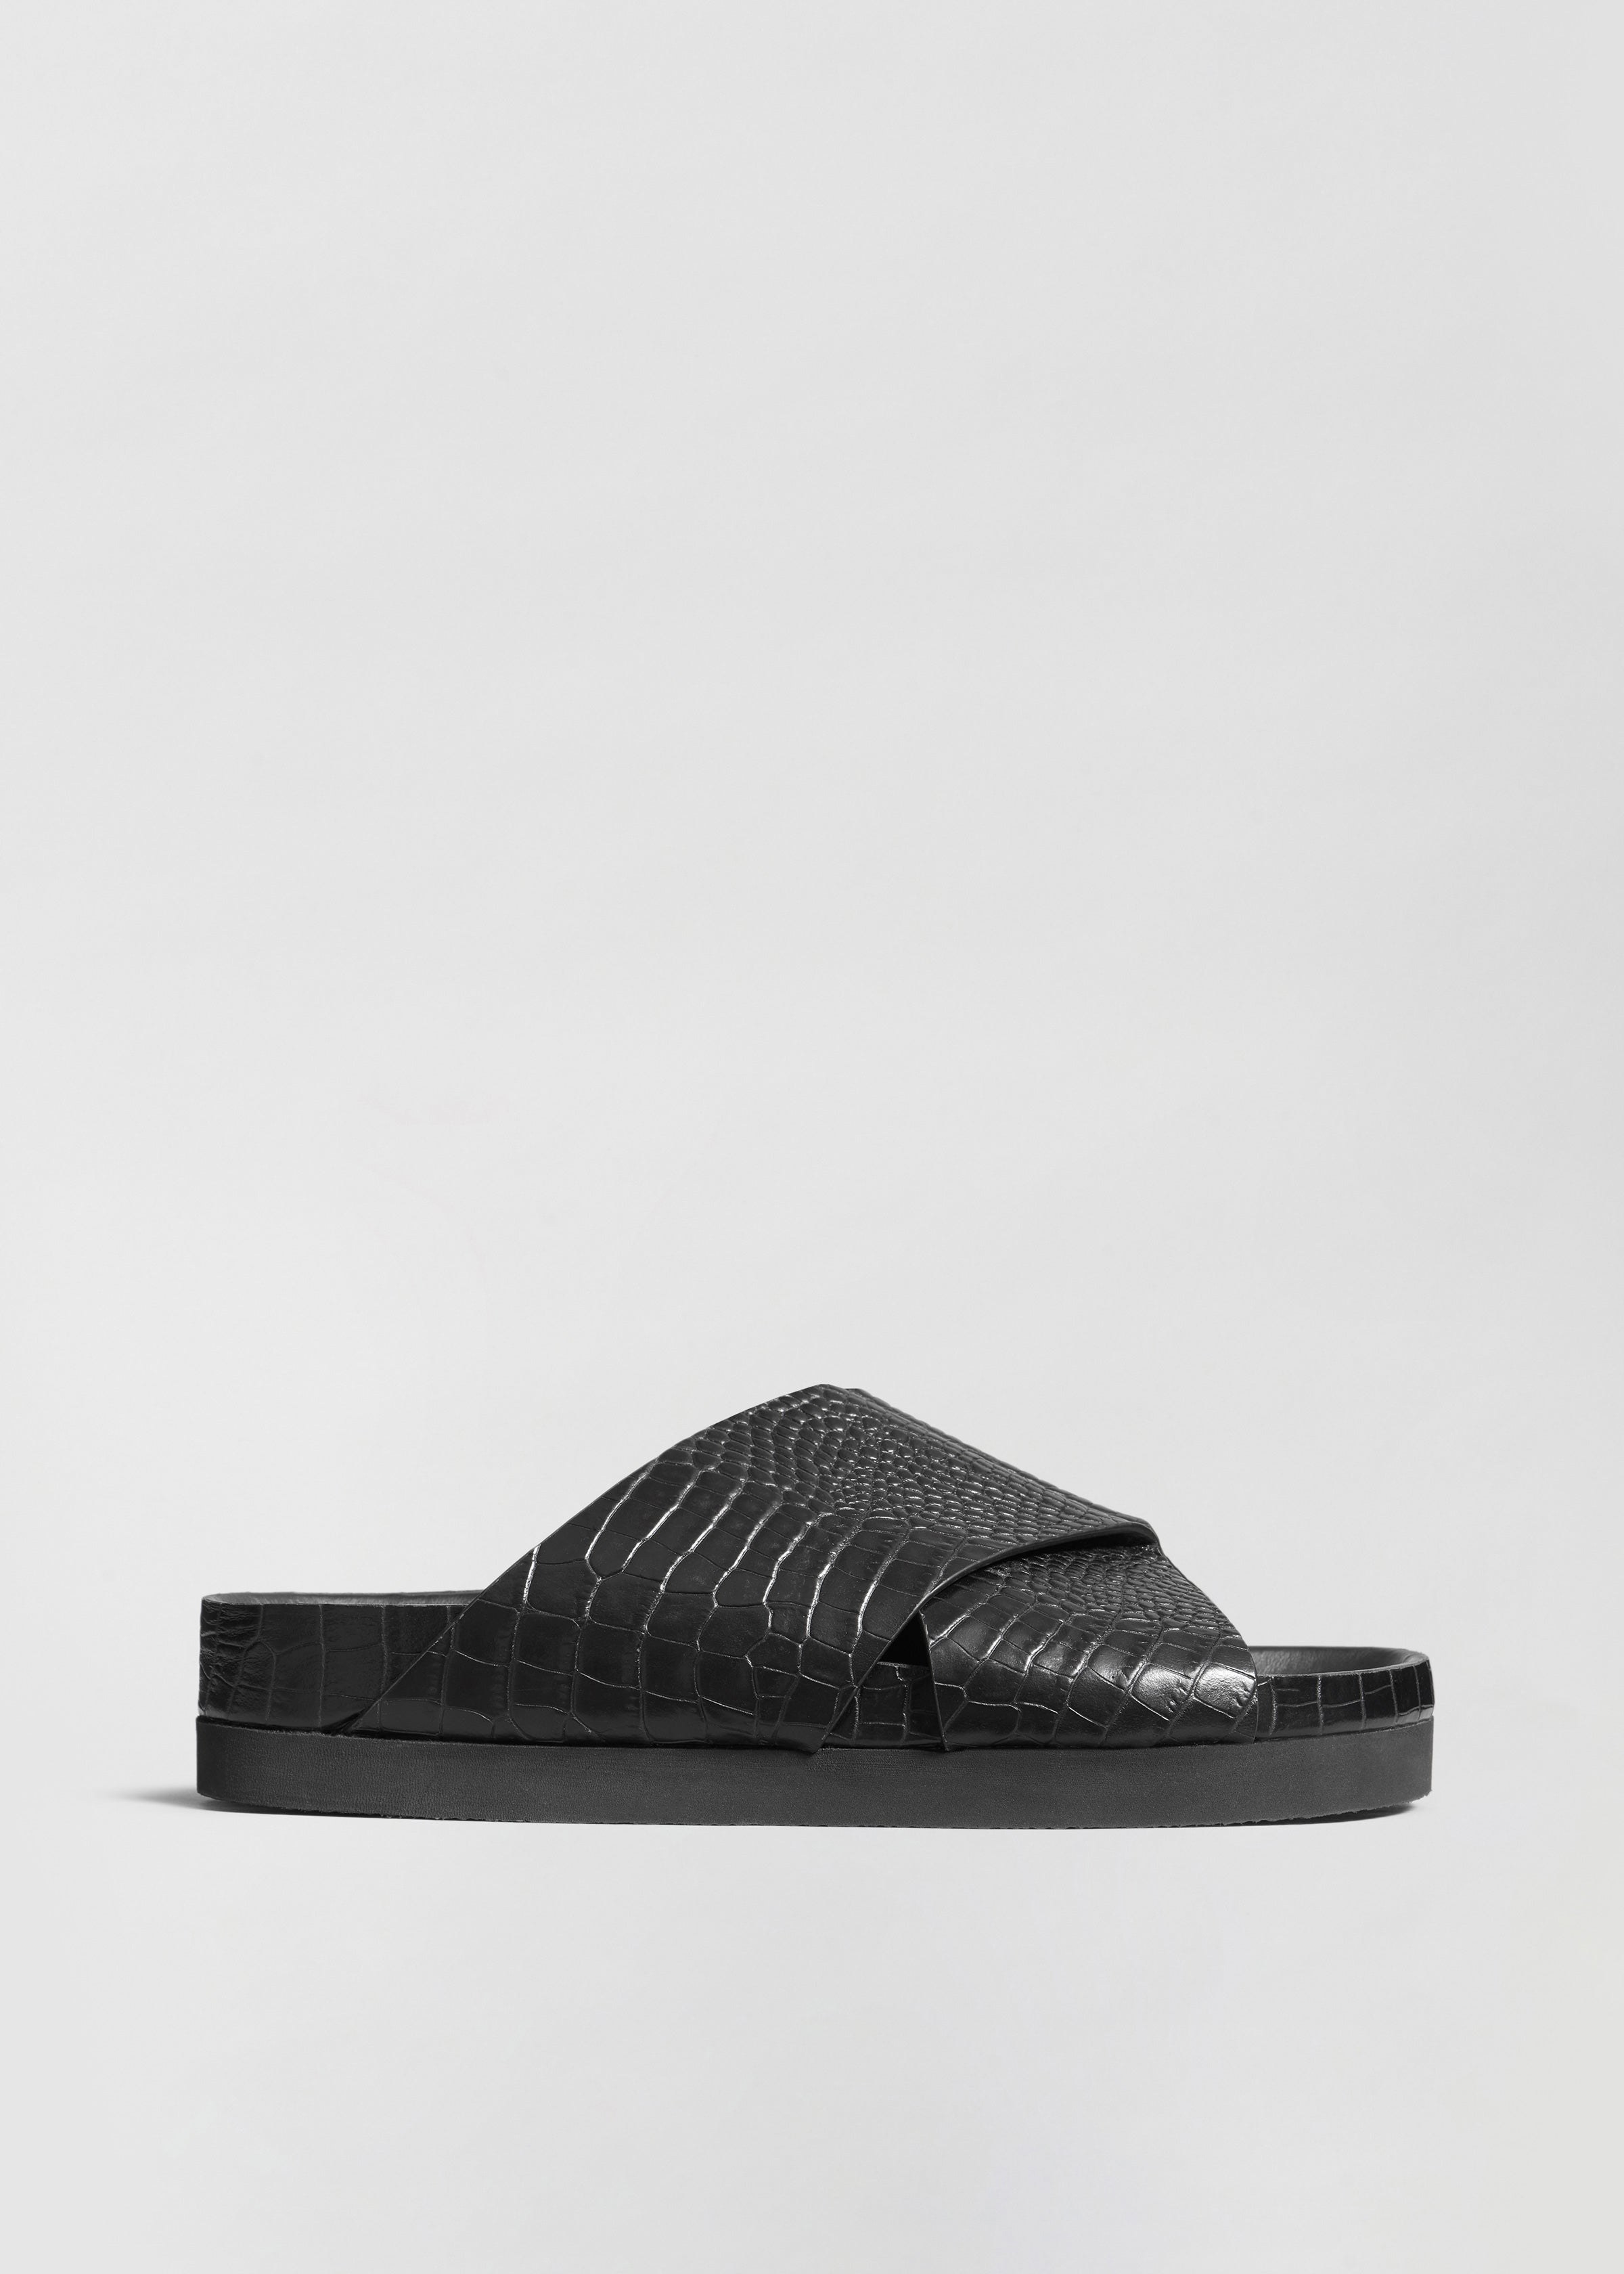 Slide Sandal in Embossed Leather